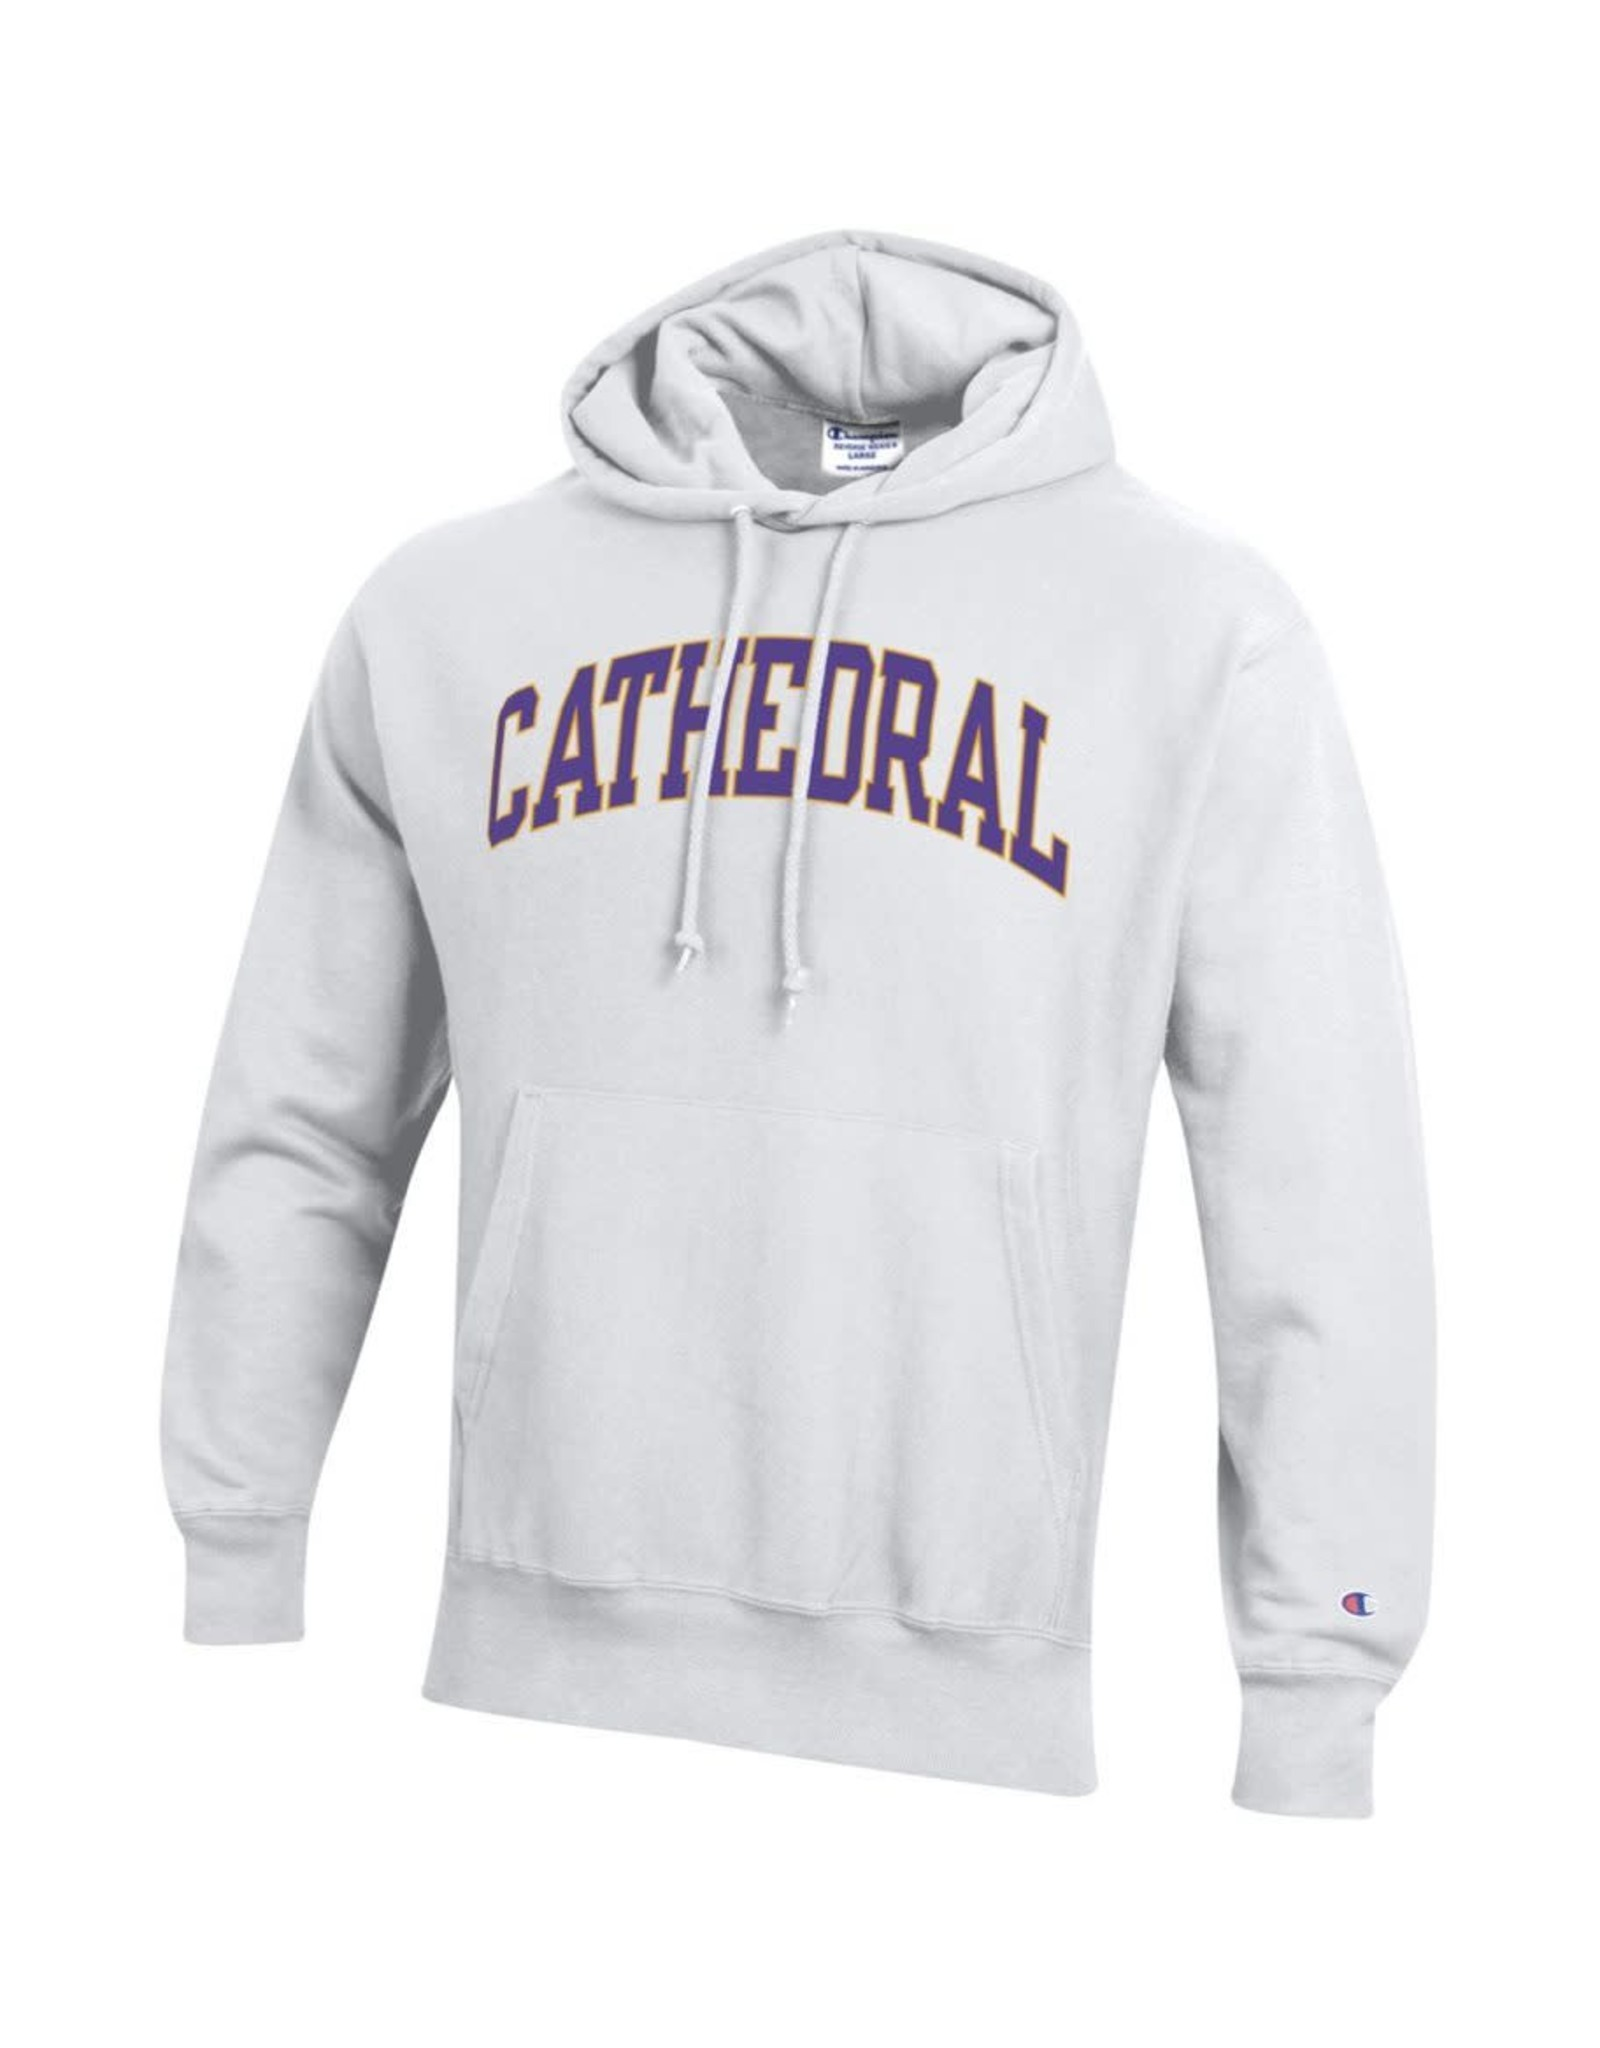 SWEATSHIRT-HOOD CATHEDRAL WHITE